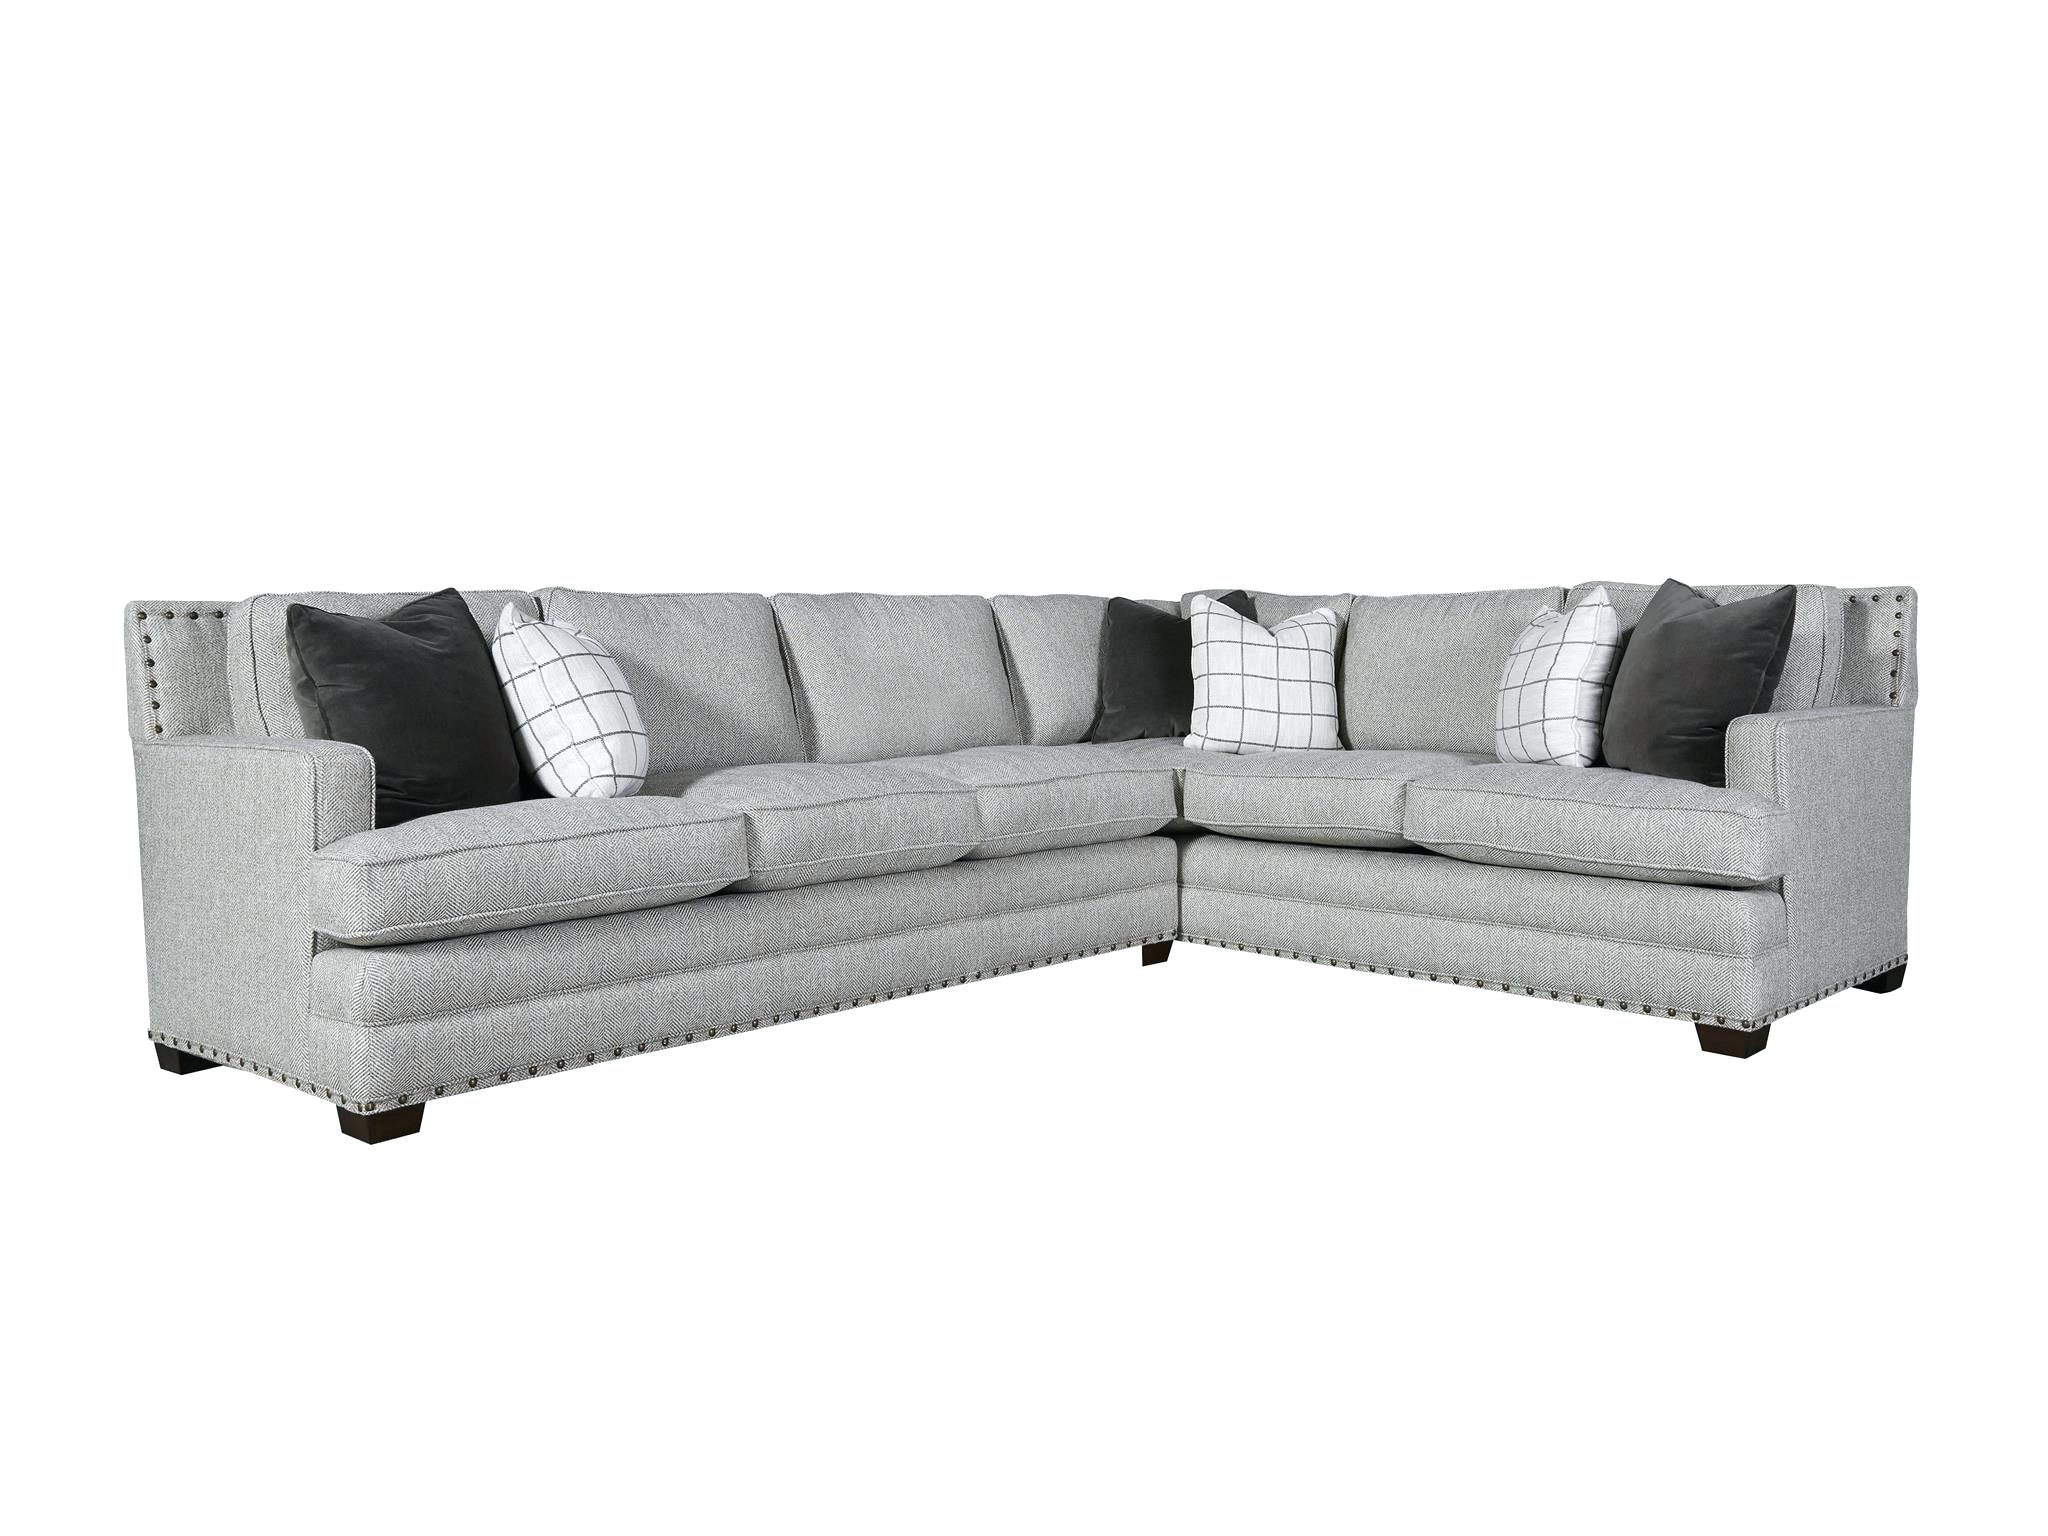 Universal Furniture High Point Nc Upholstery Sectional Right Arm With High Point Nc Sectional Sofas (View 4 of 10)